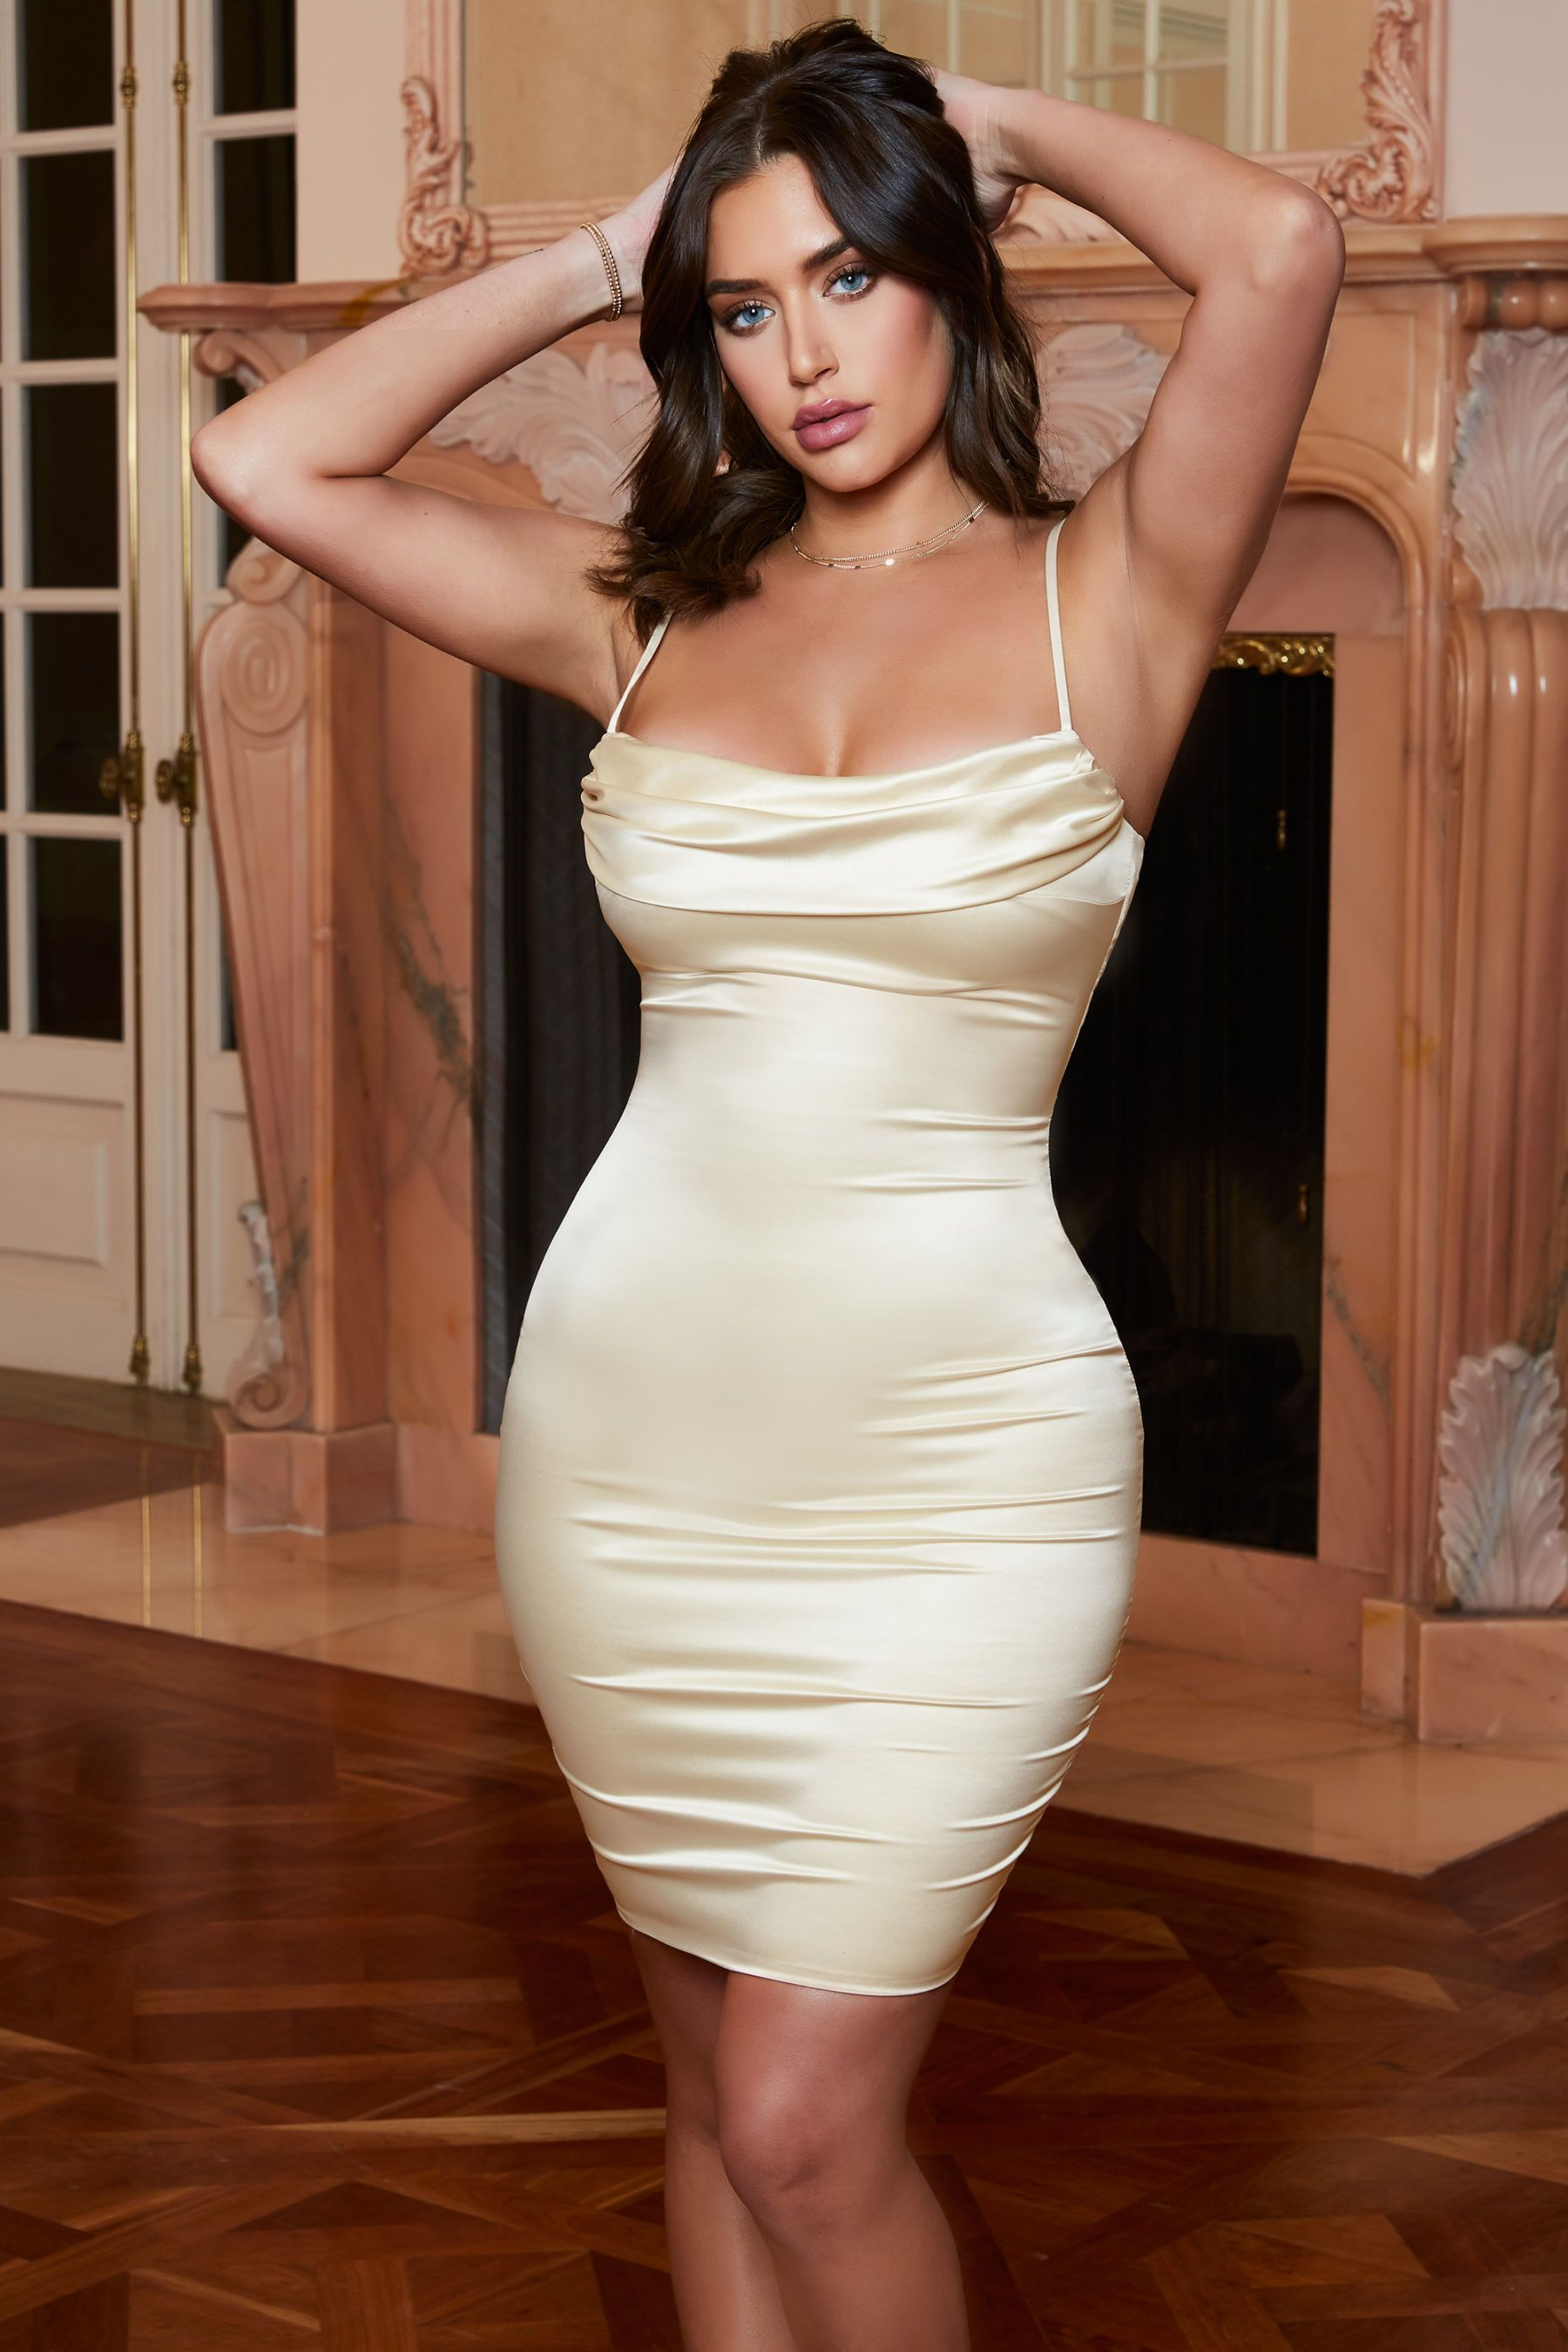 c02bbb7453 Cowl Hearted Cowl Neck Satin Midi Dress in Cream in 2019 | body ...